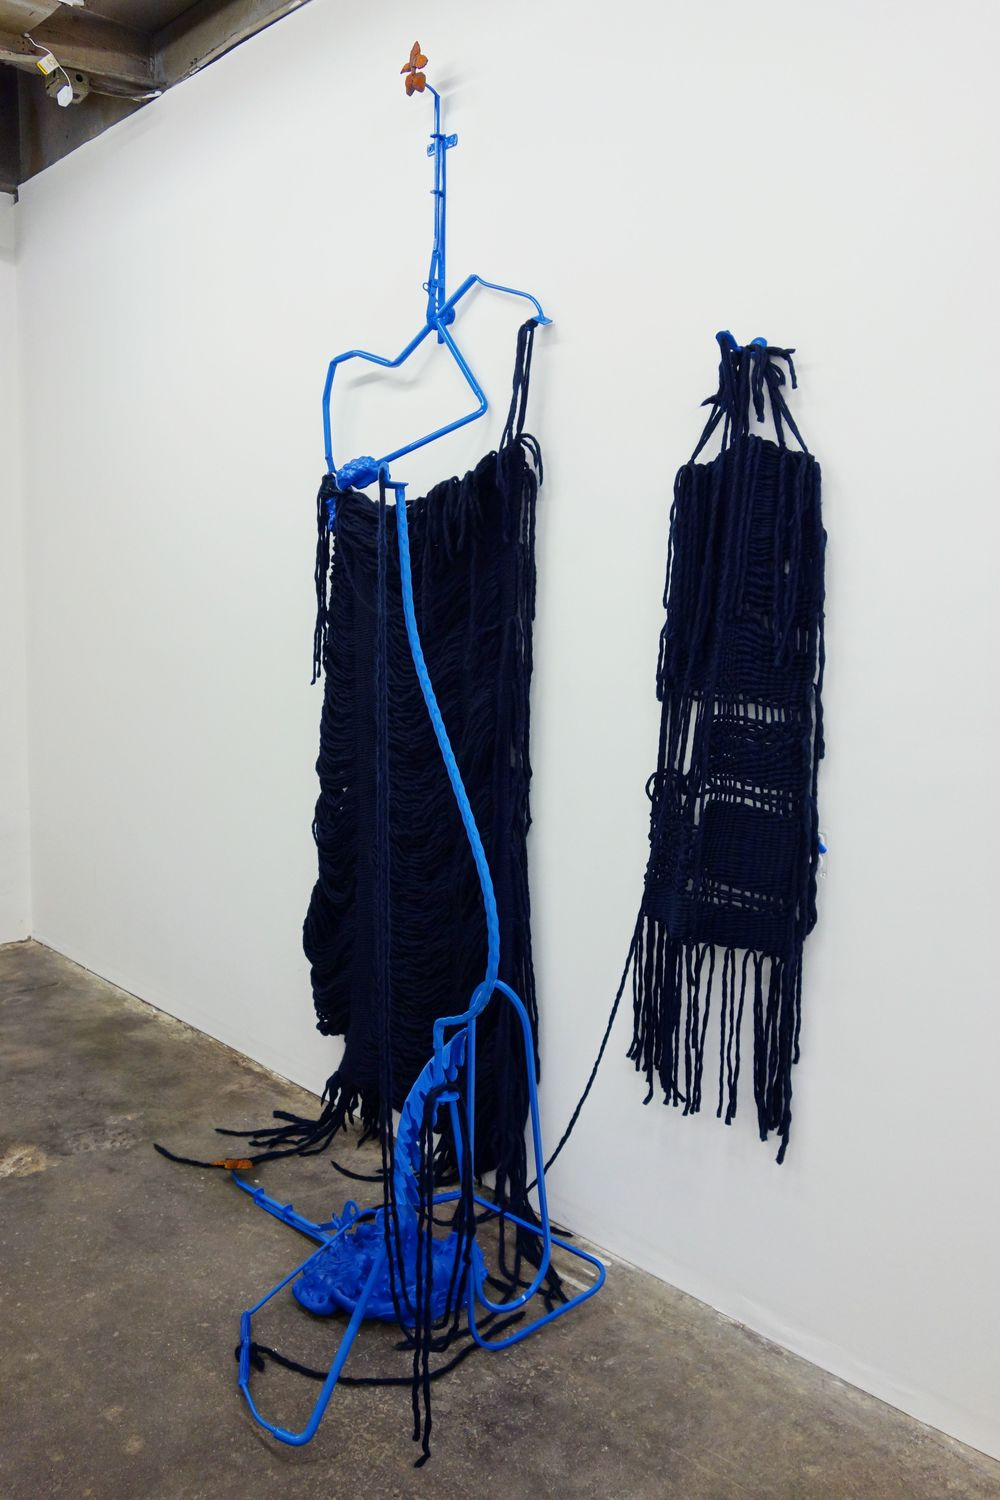 Sonja Gerdes, Pie of Trouble. Let's Hang. Berries and Balls., 2014 Found Steel, lacquer, unfired clay, and woven wool